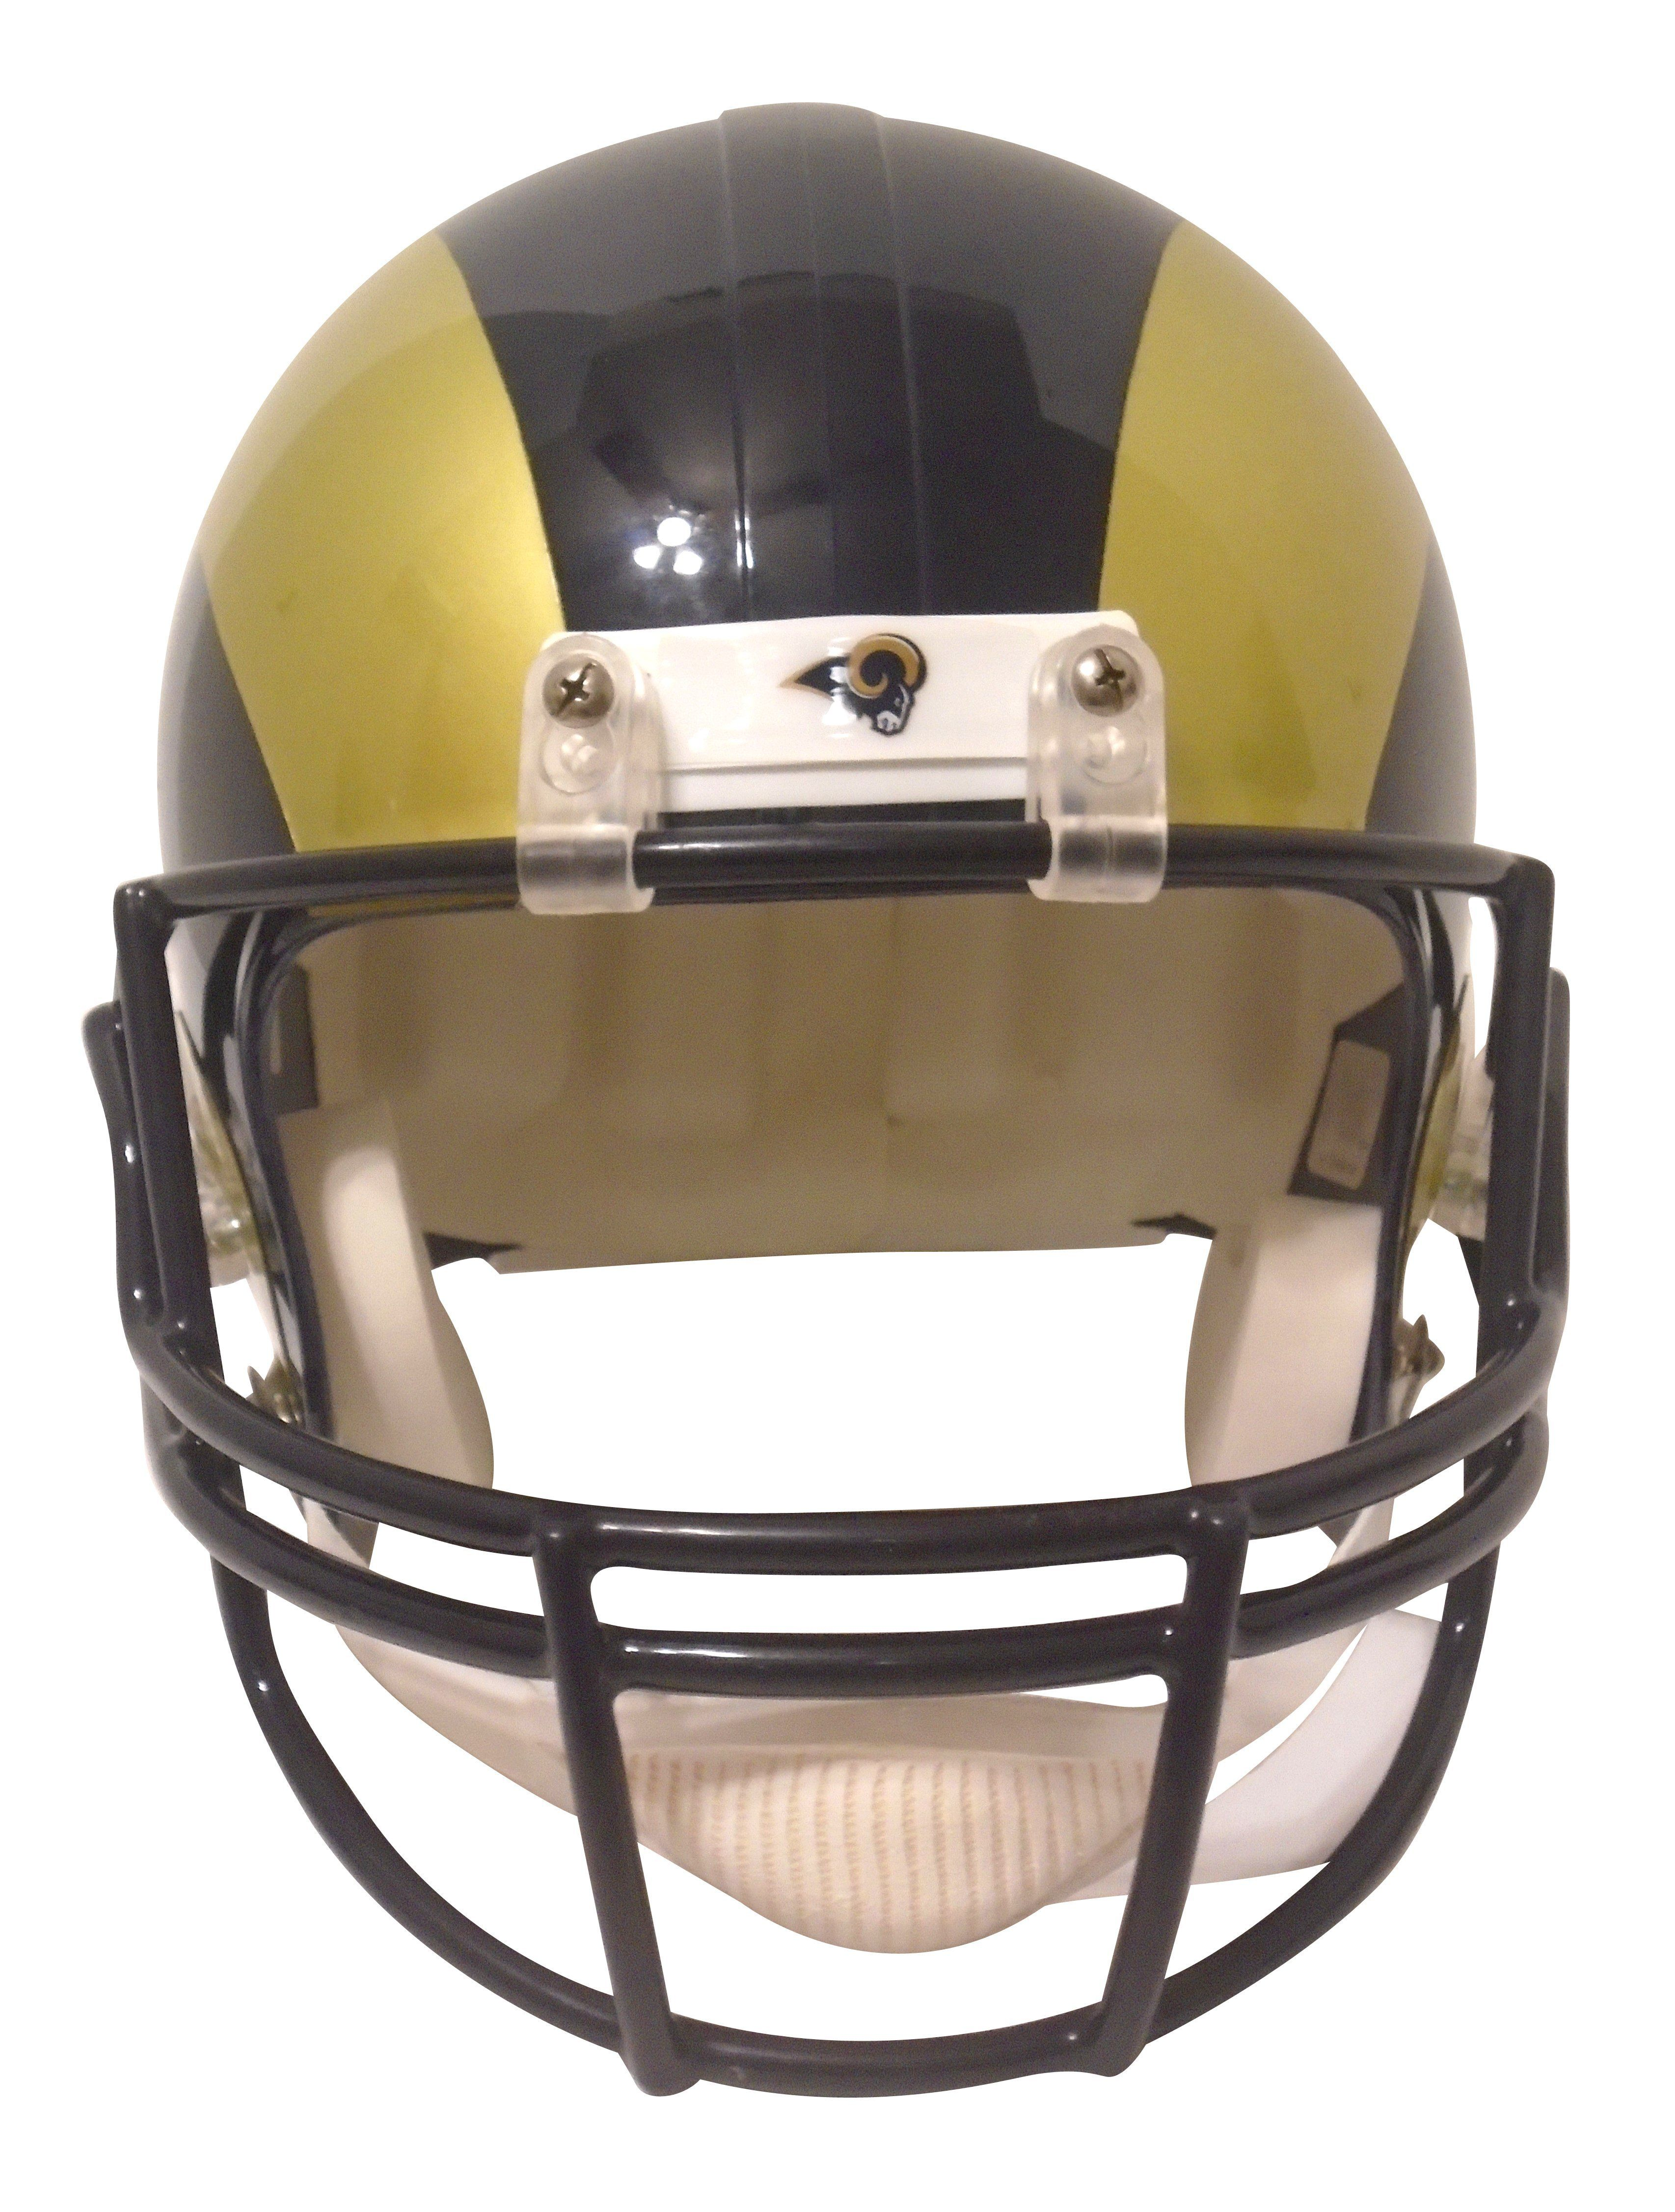 finest selection 39664 4717d This is a brand-new Kurt Warner signed St. Louis Rams ...